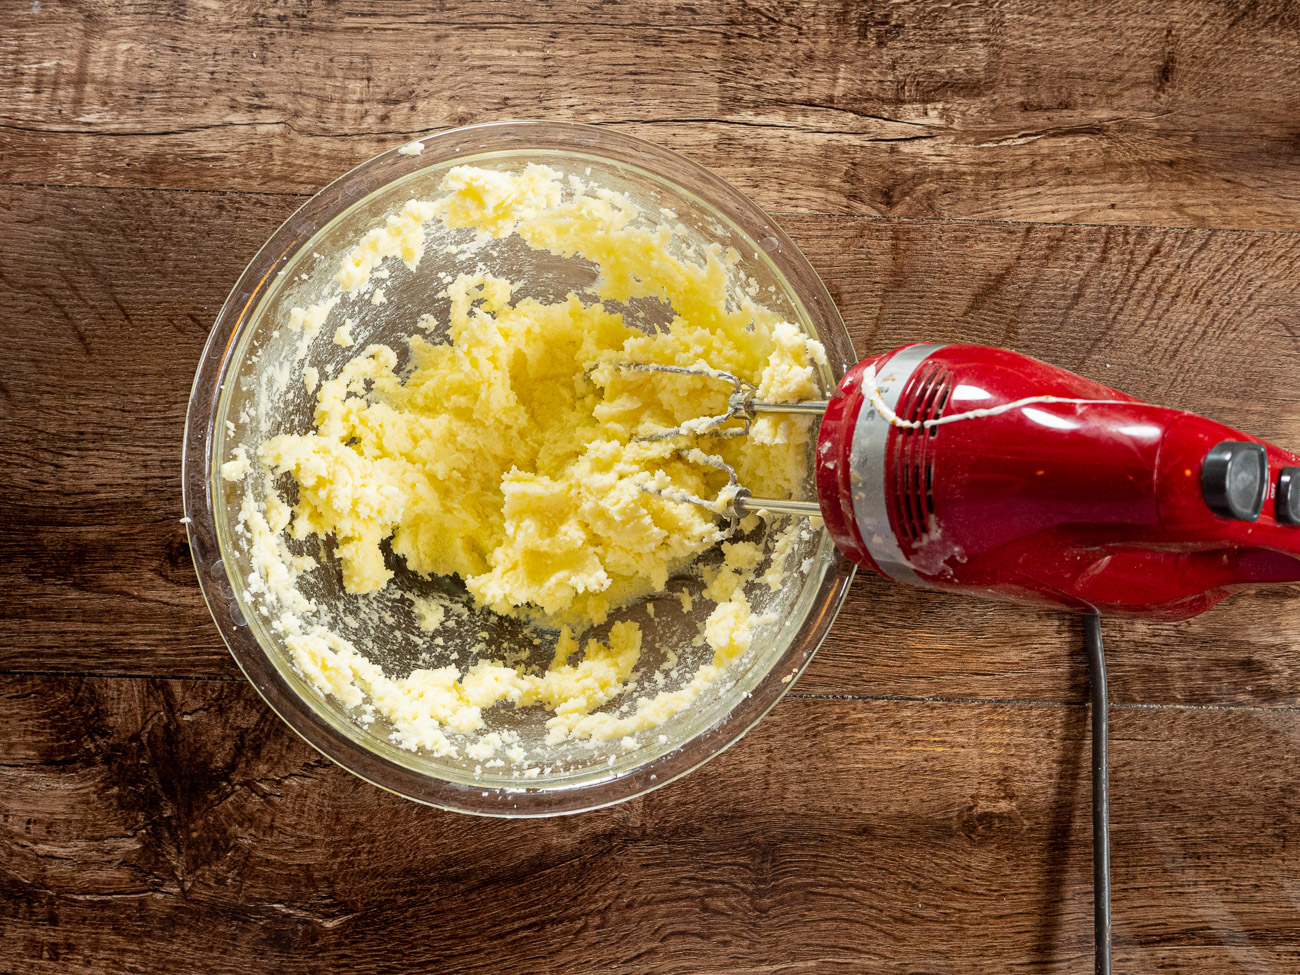 In a separate large bowl cream together butter and sugar using an electric mixer.  Slowly add flour mixture and blend until a smooth dough is achieved.